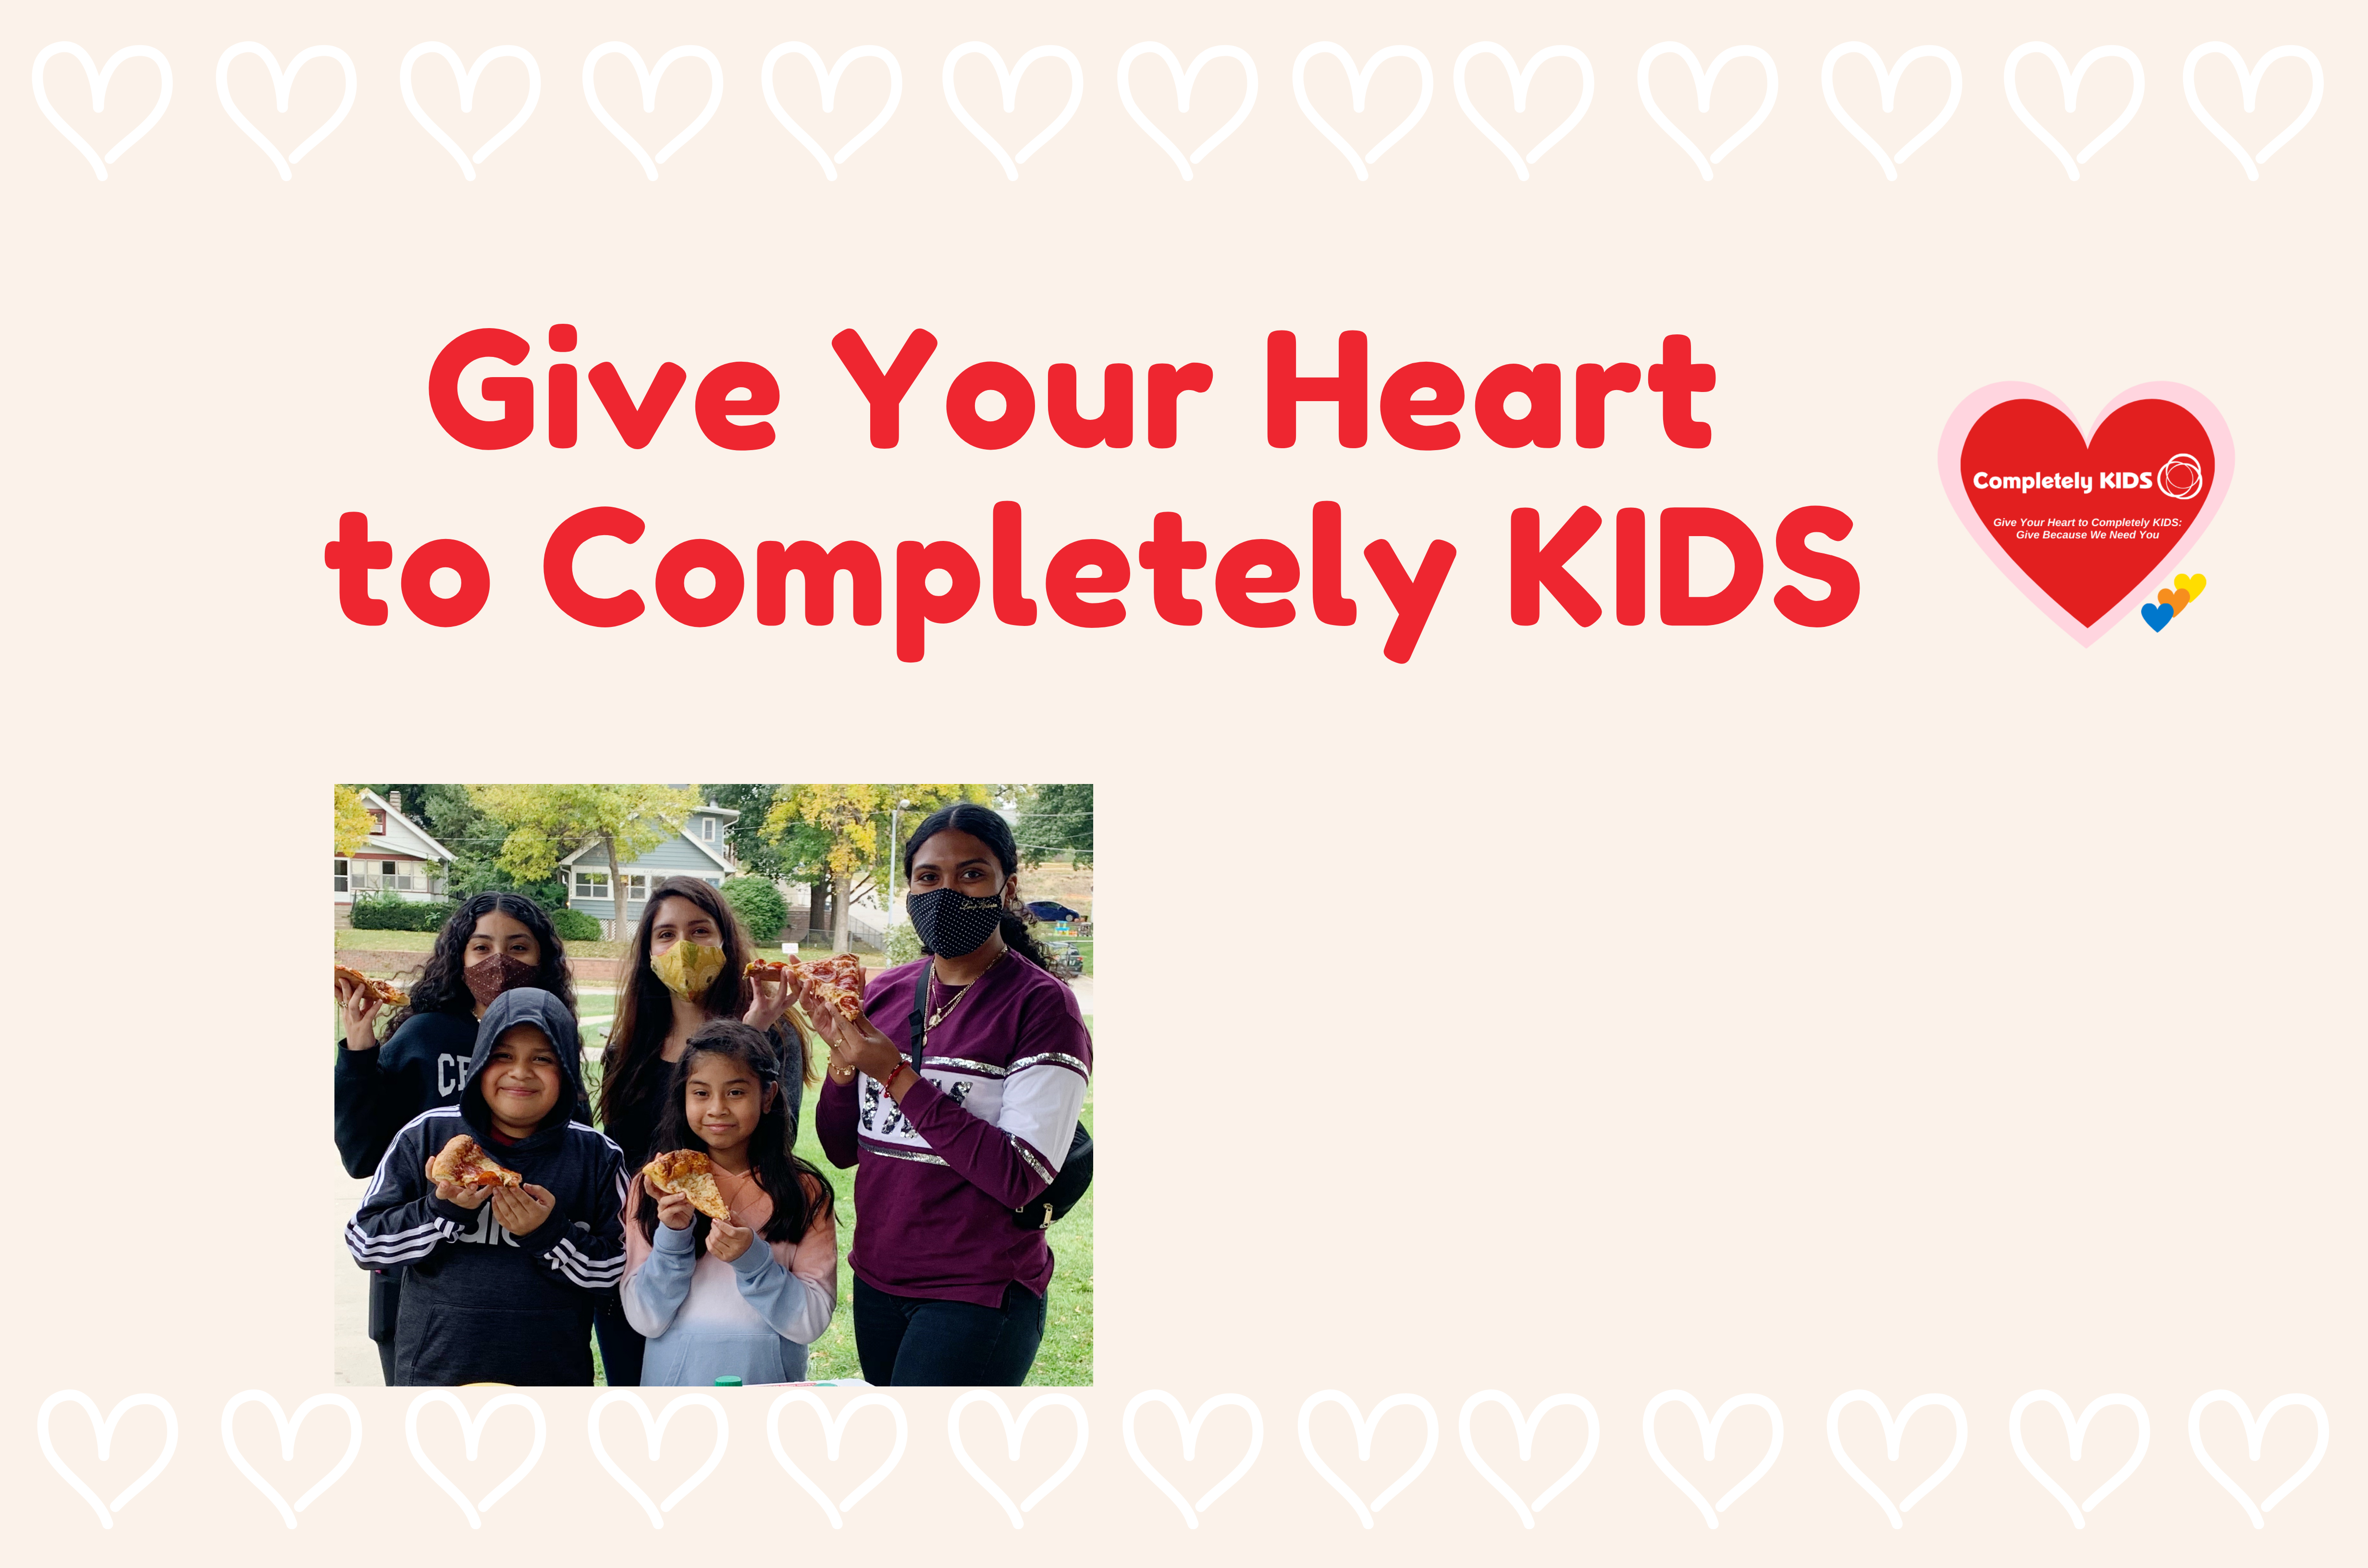 We Need Your Heart!